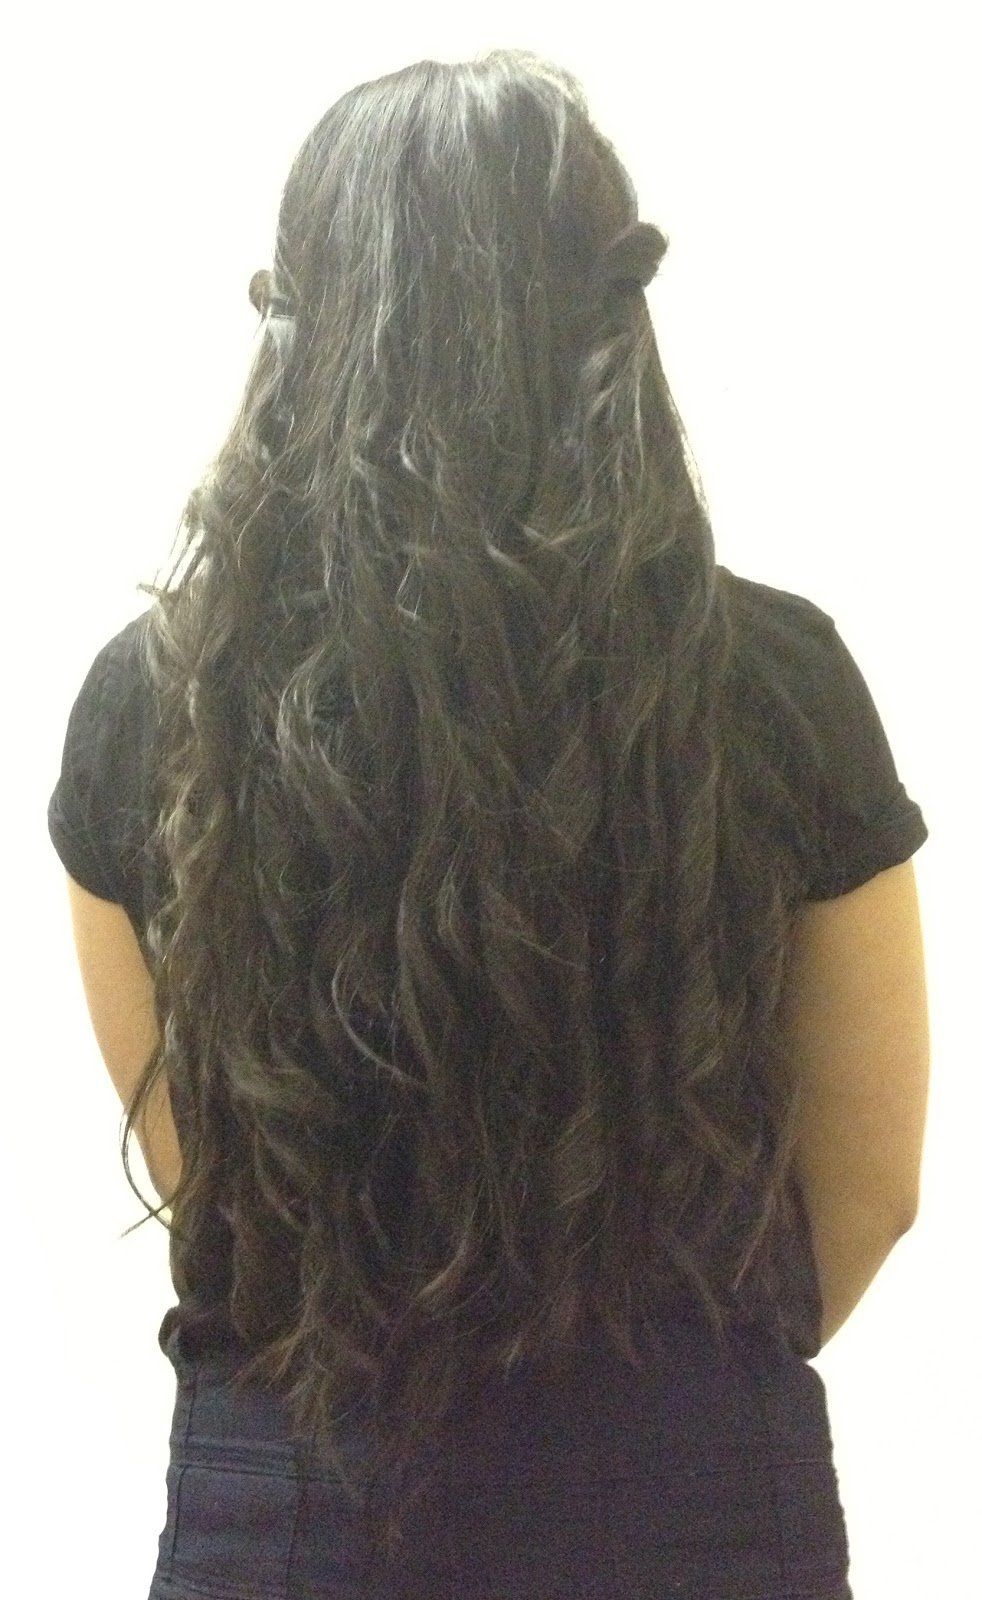 Headkandy Hair Extensions Review 2013 70